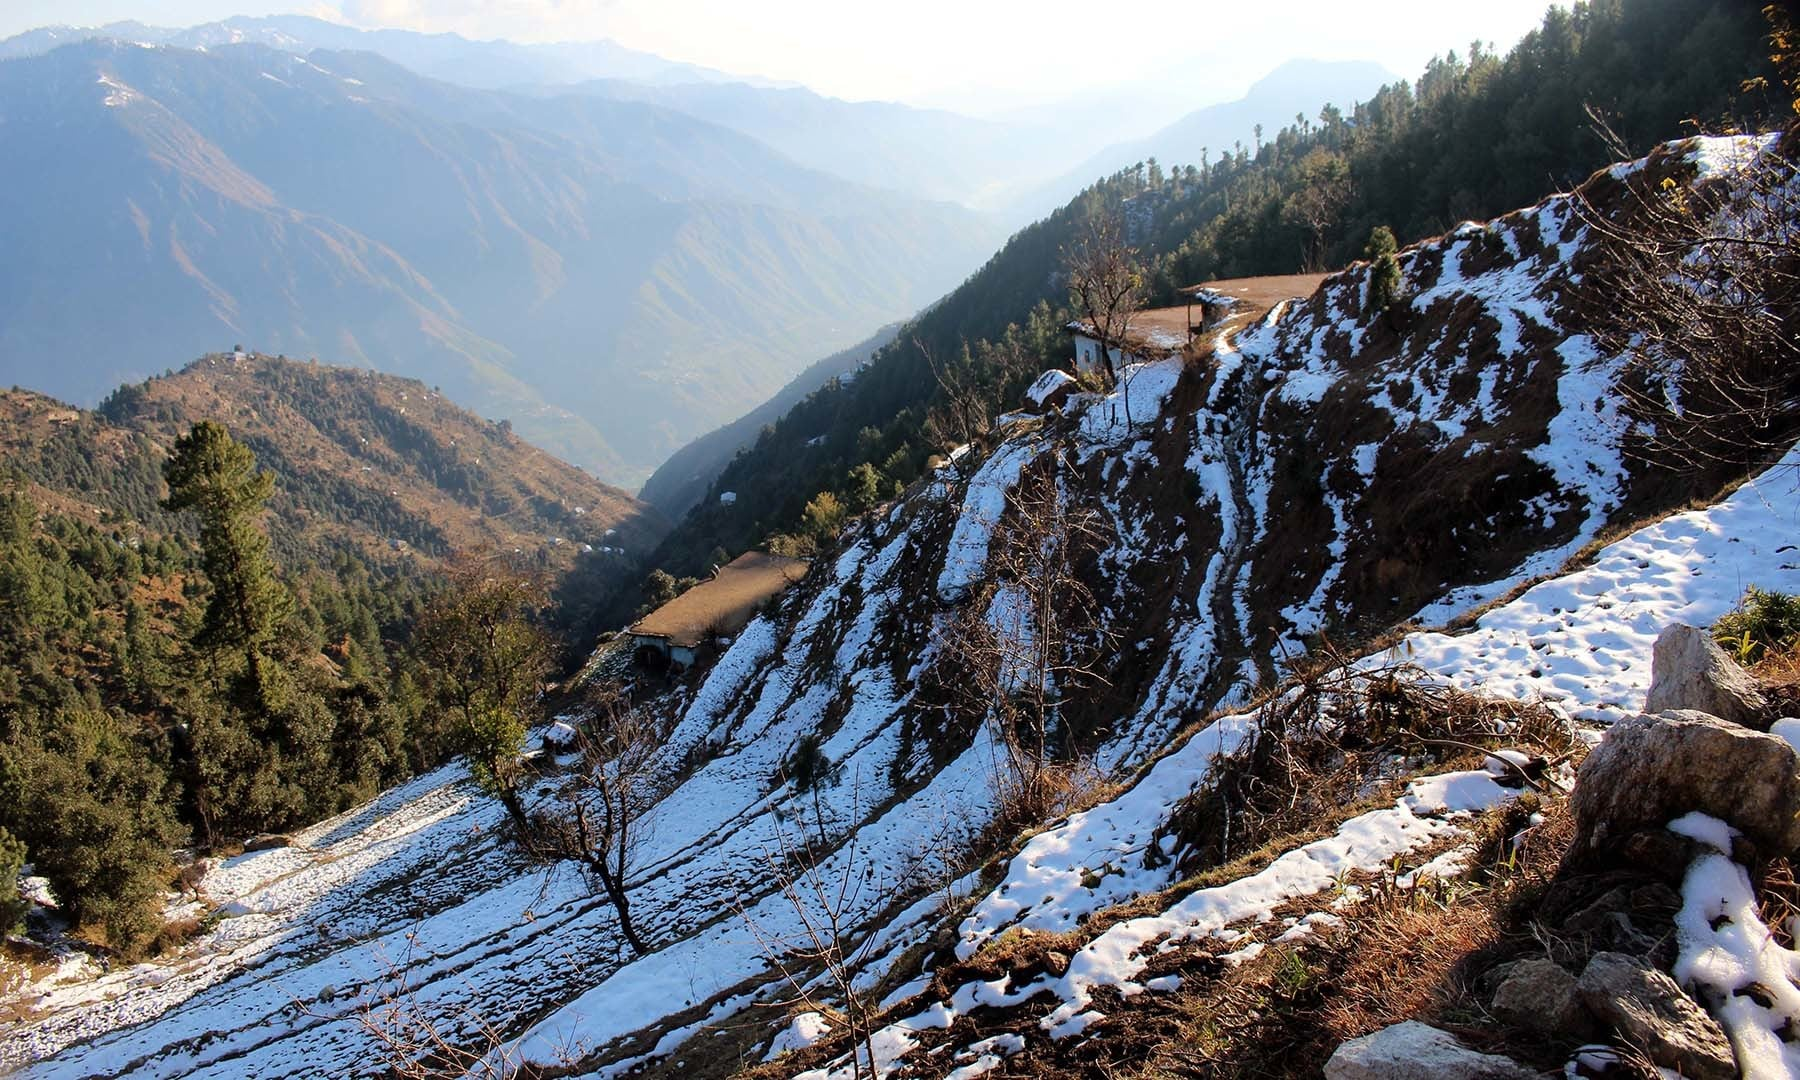 A view of the mountainous area after receiving light snowfall. — Photos by author